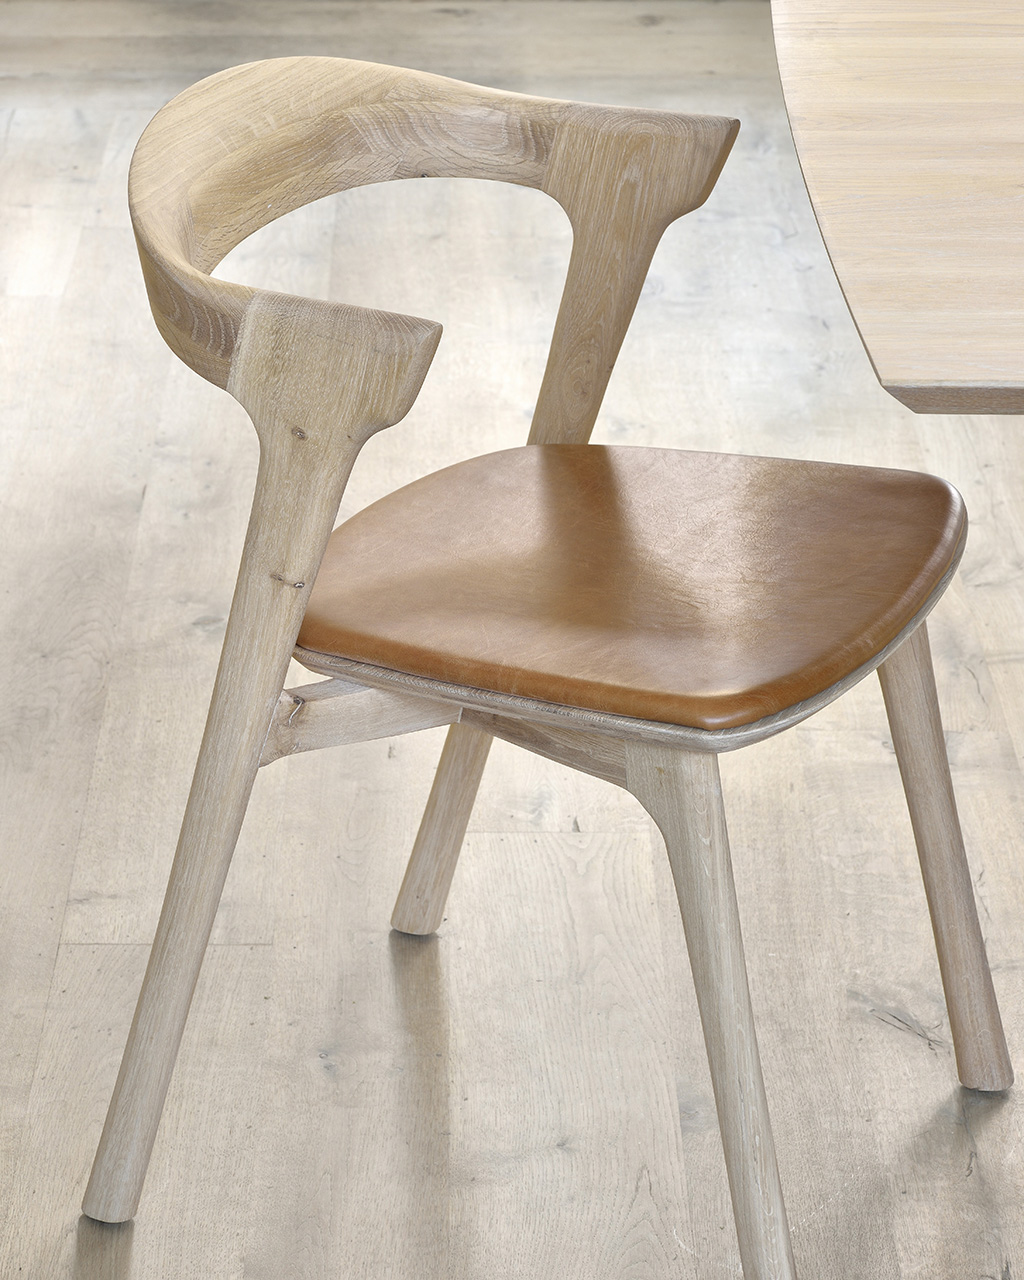 Biennale Interieur - Belgium's leading design and interior event - 51488_oak_bok_dining_chair_with_cognac_leather_seat.jpg